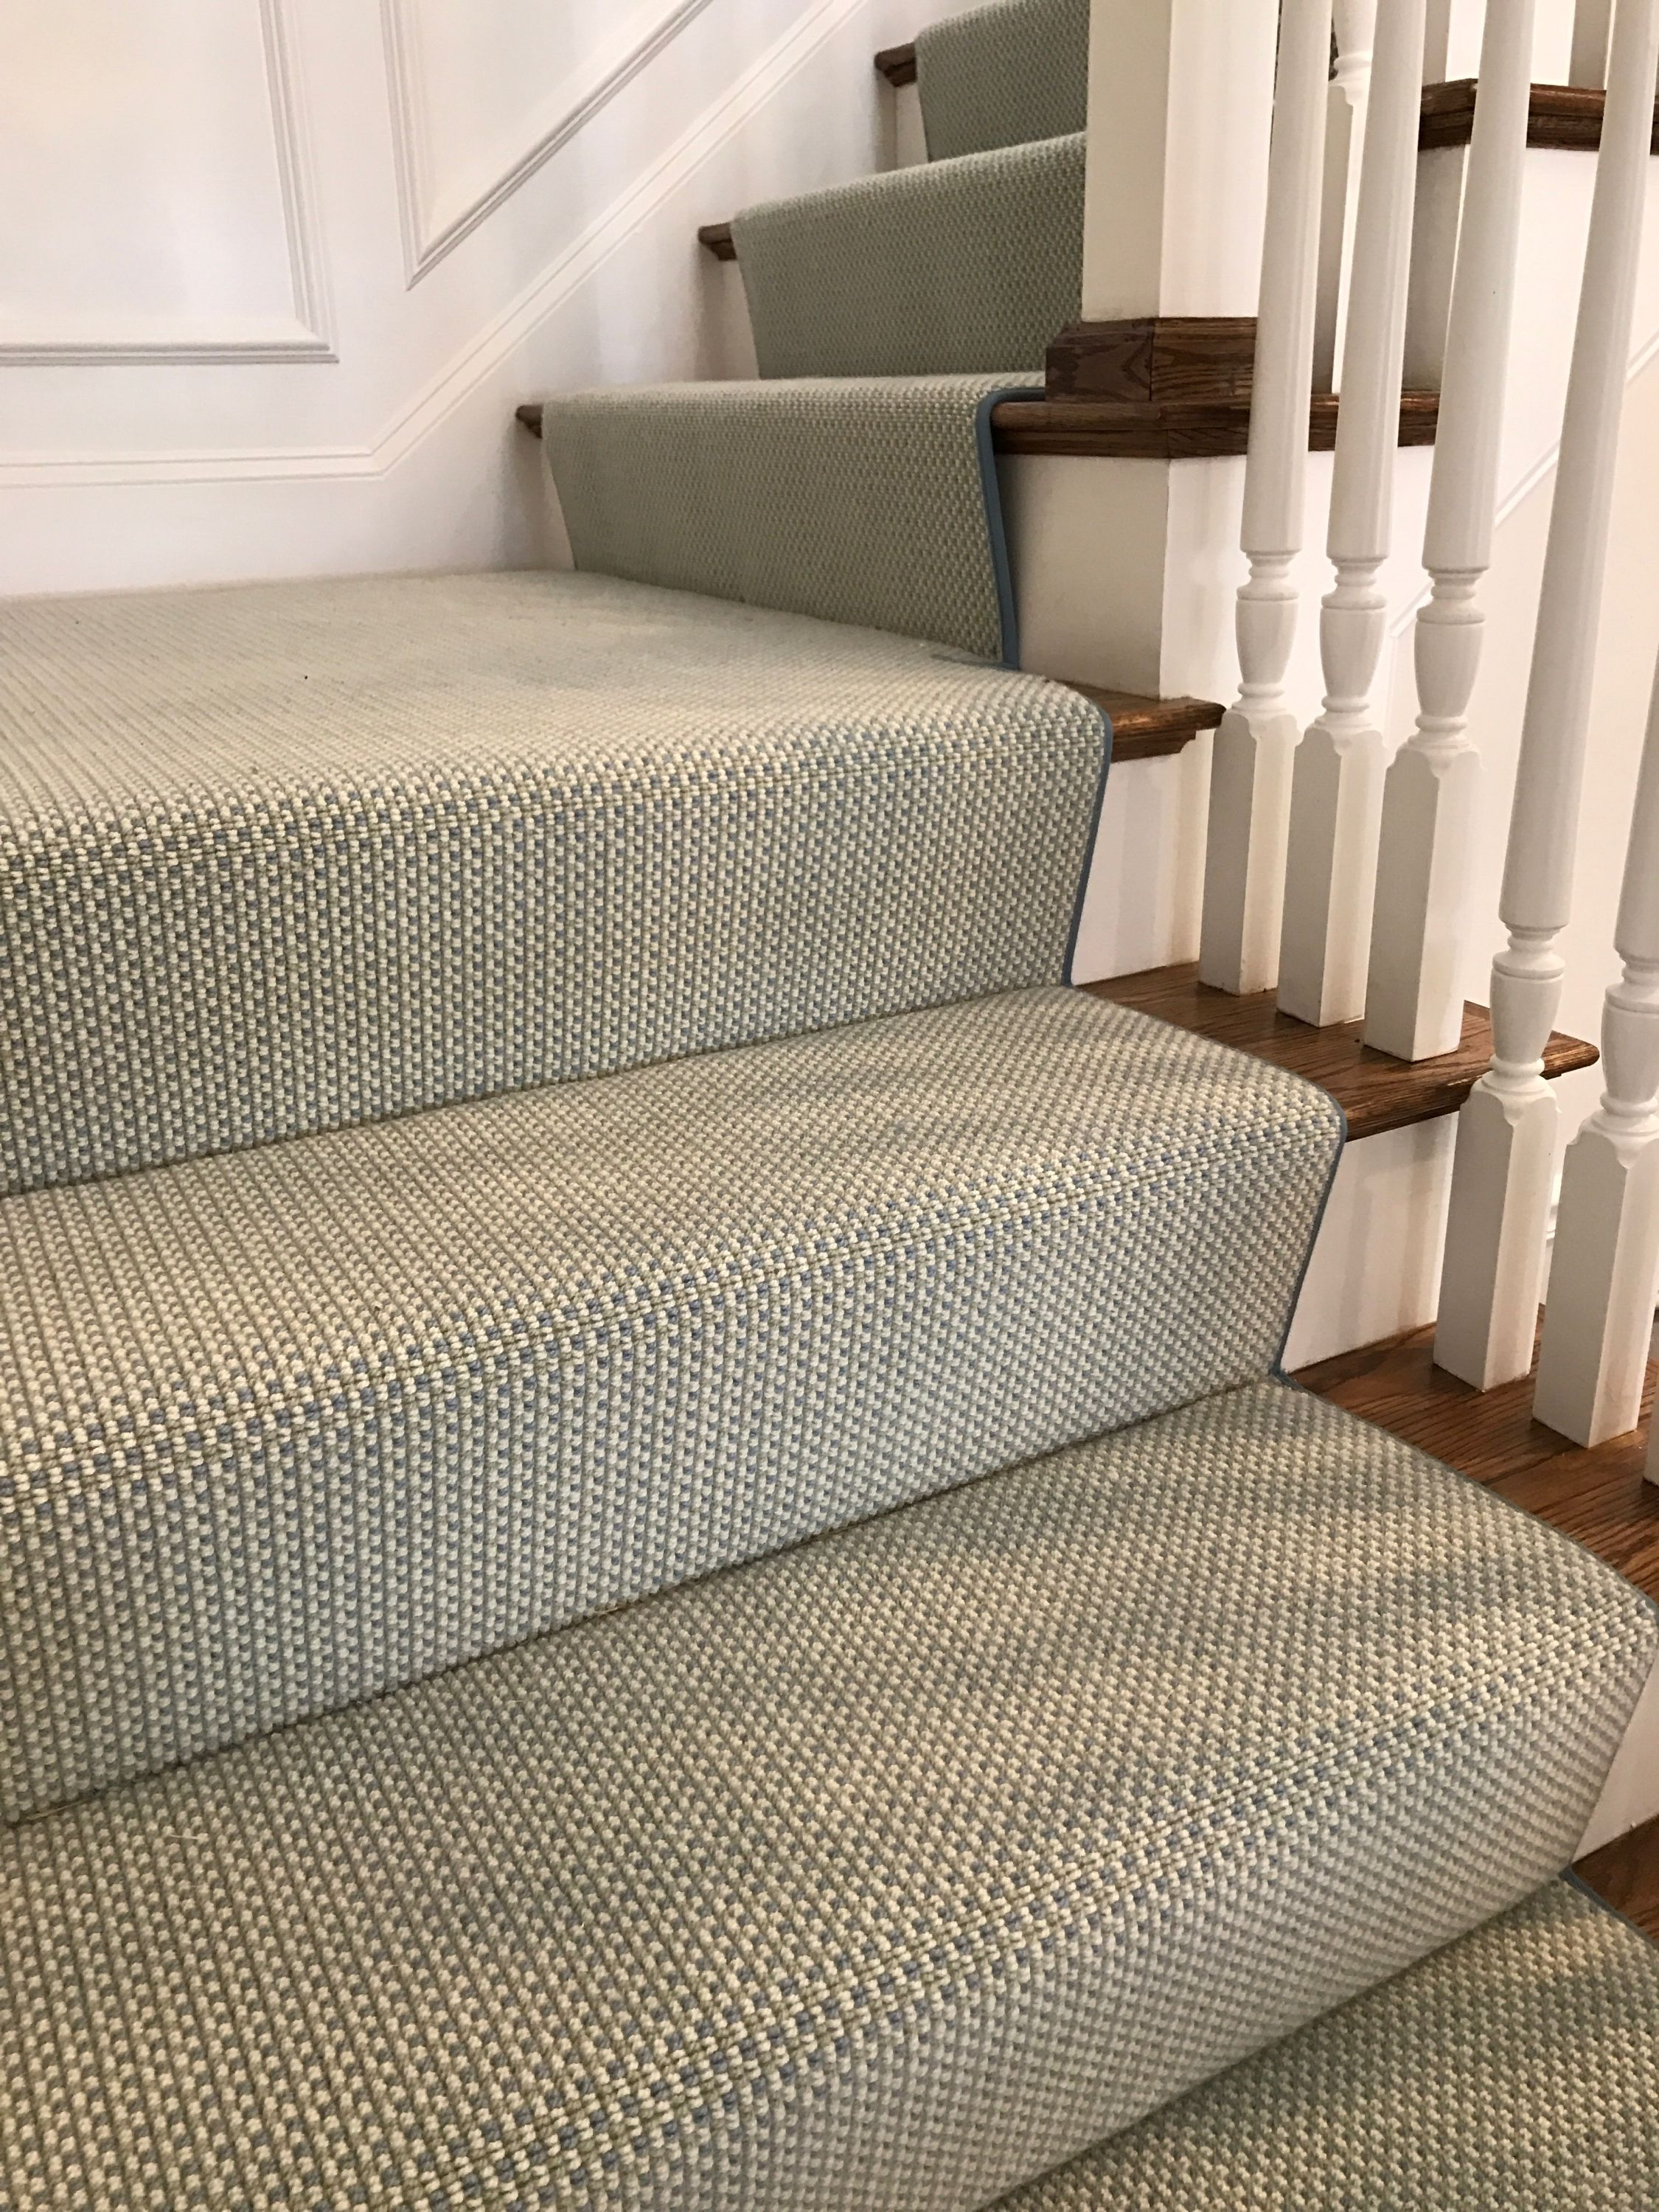 Pin By Innovative Flooring Design On Stair Runners With Pie Turns Landings Carpet Stairs Stair Runner Carpet Bedroom Carpet Colors